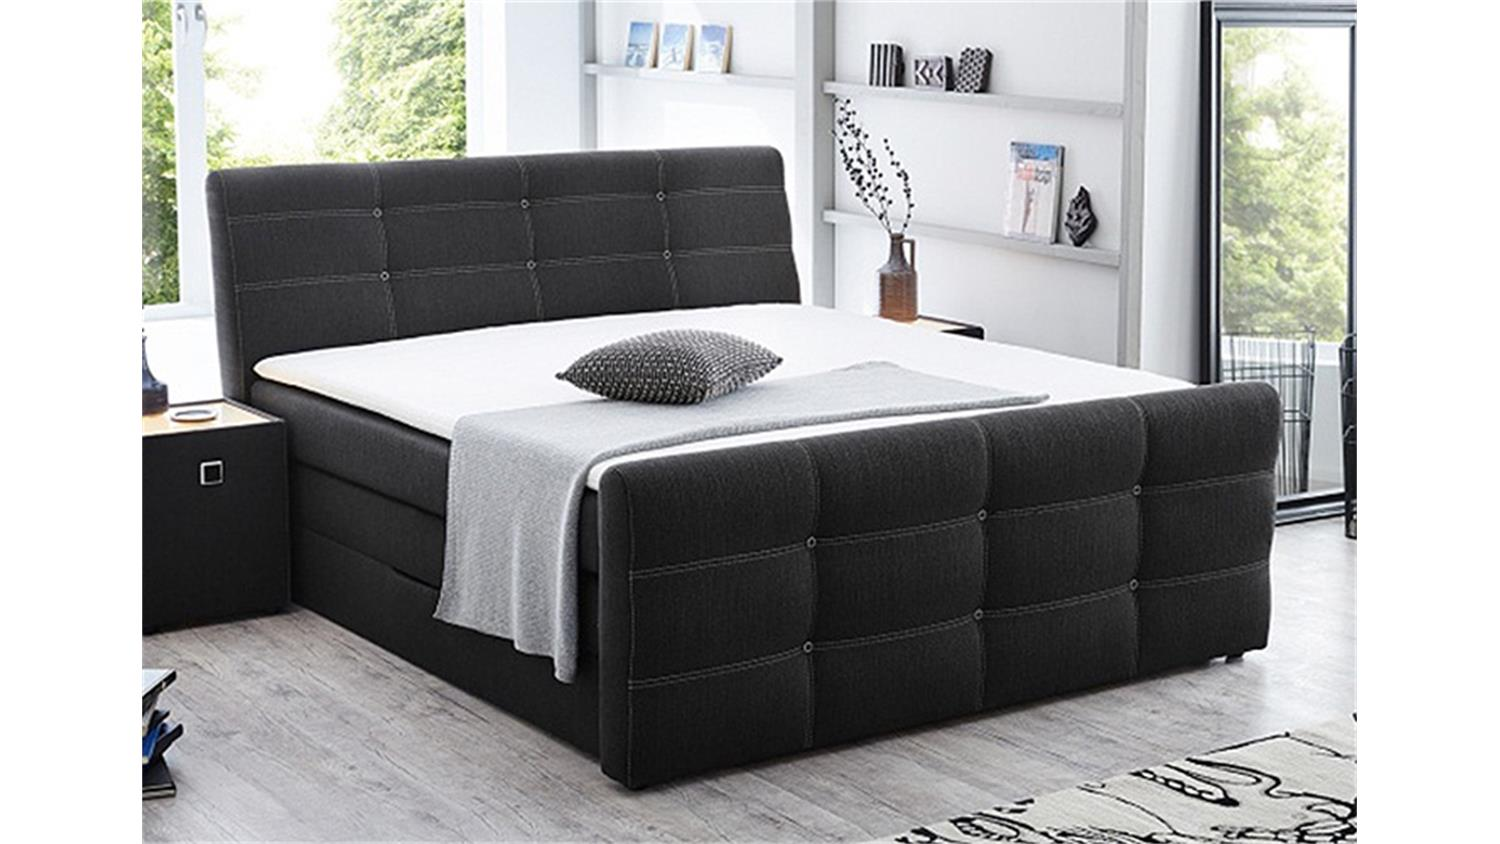 boxspringbett grande bett in grau 180x200 produktvideo. Black Bedroom Furniture Sets. Home Design Ideas